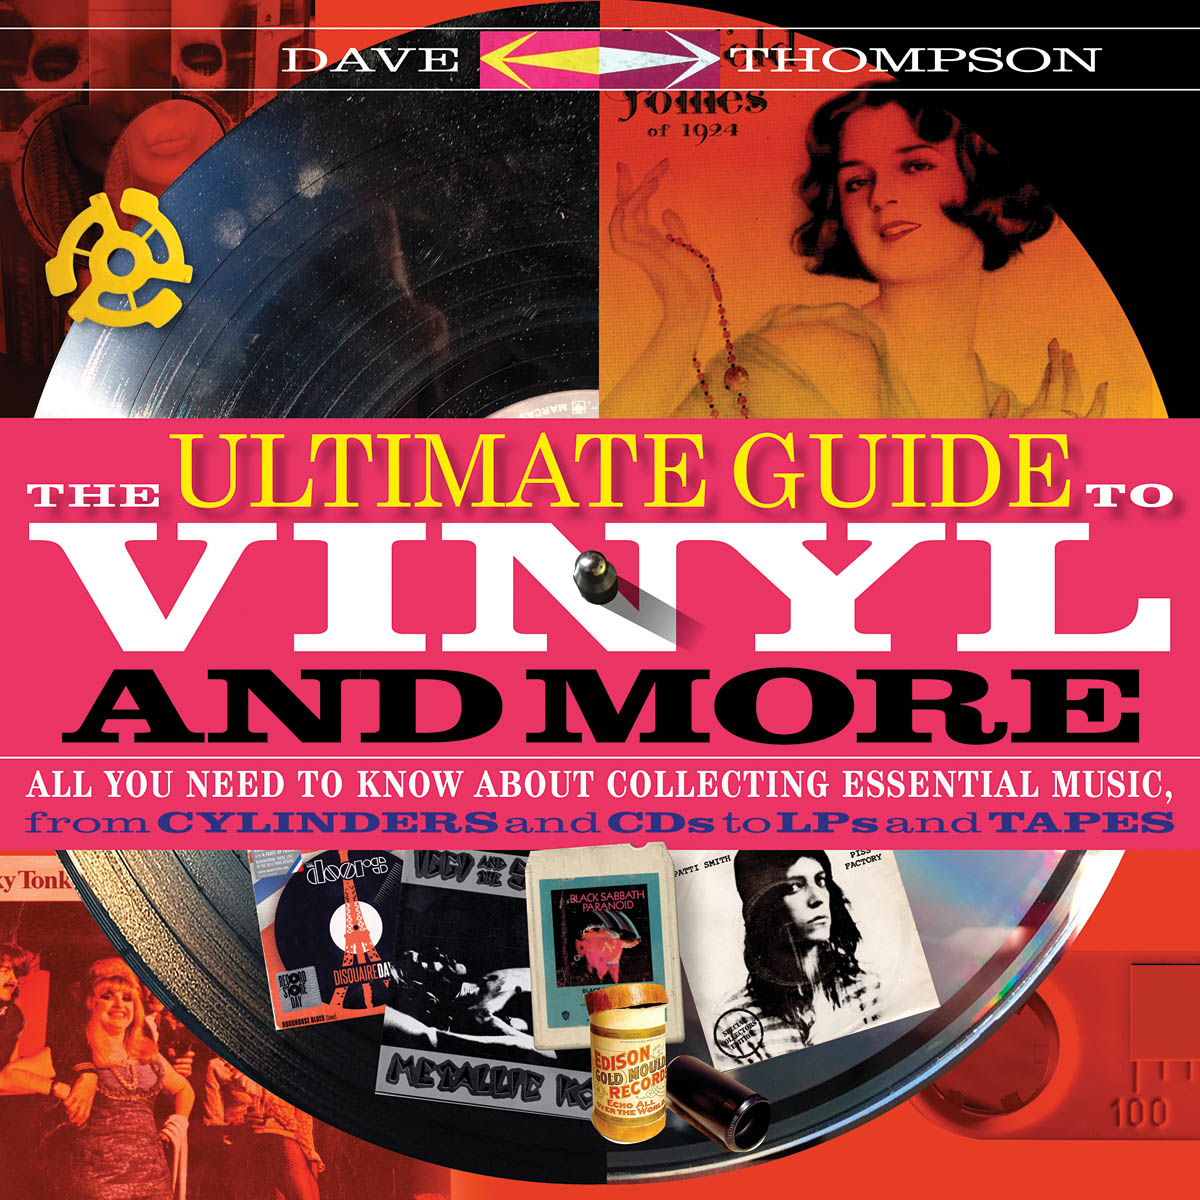 The Ultimate Guide to Vinyl and More: Reference